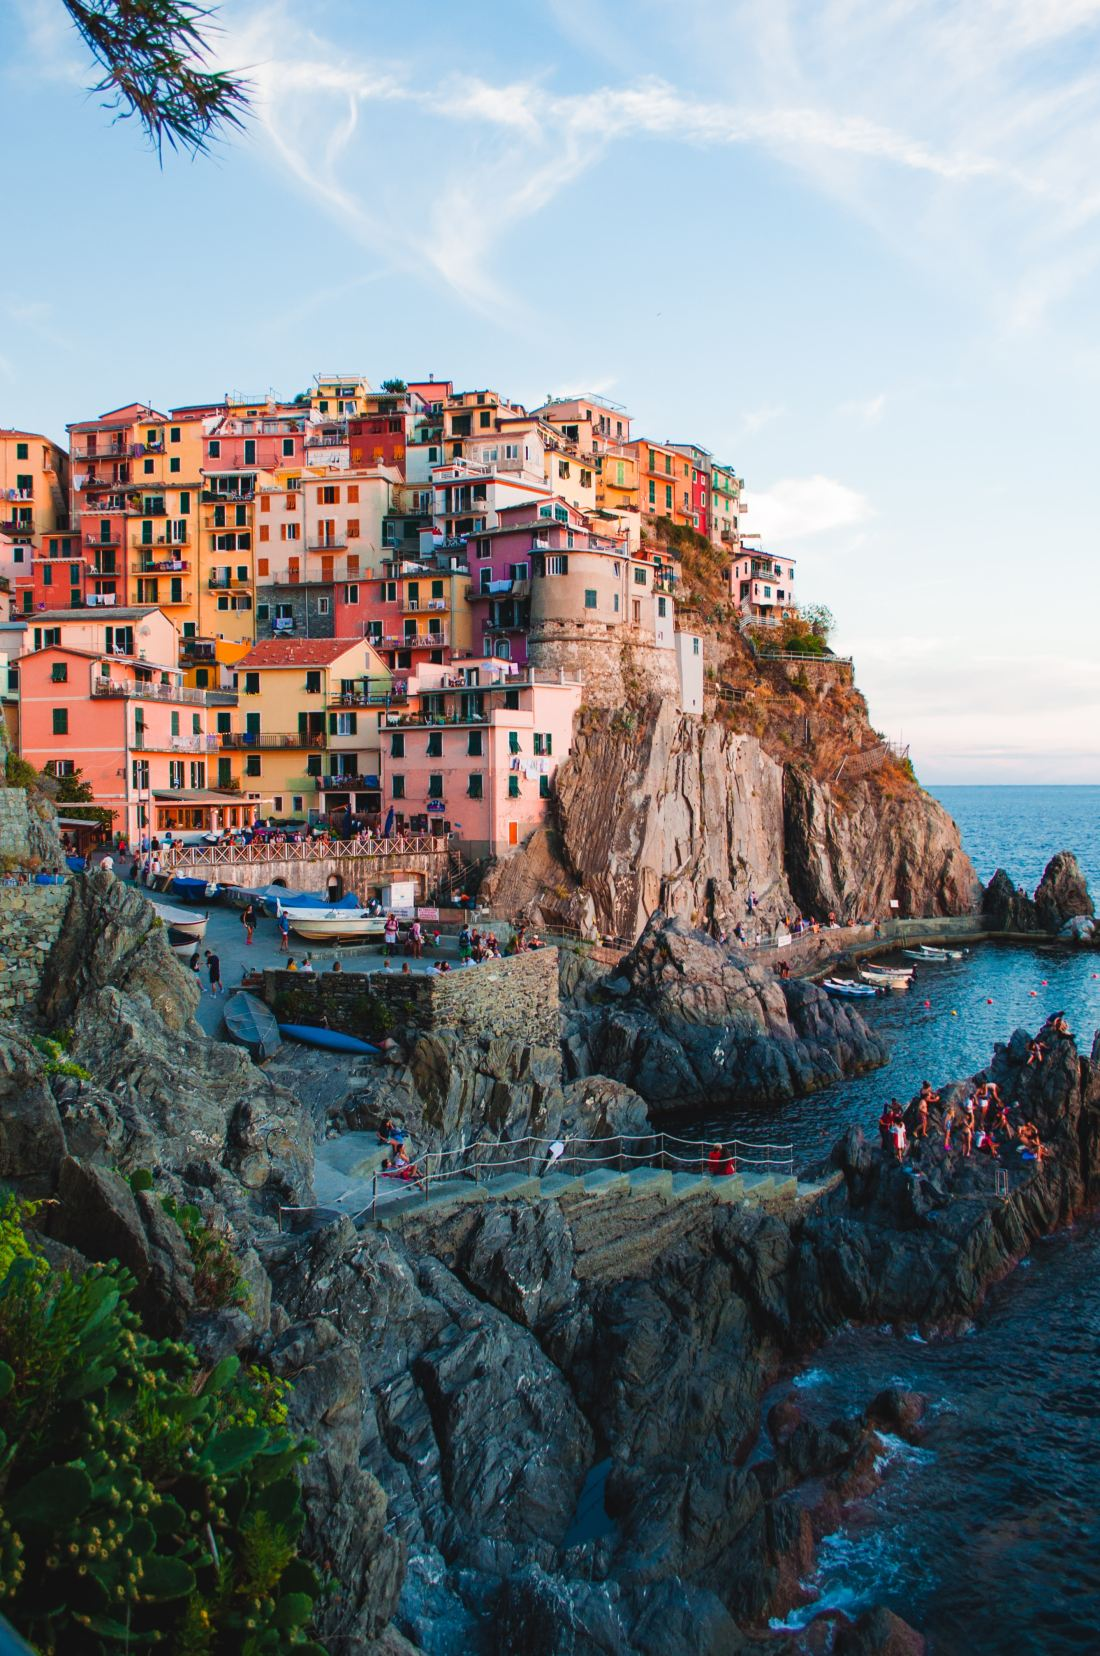 cheap flights to Italy, Cheap flights to Europe